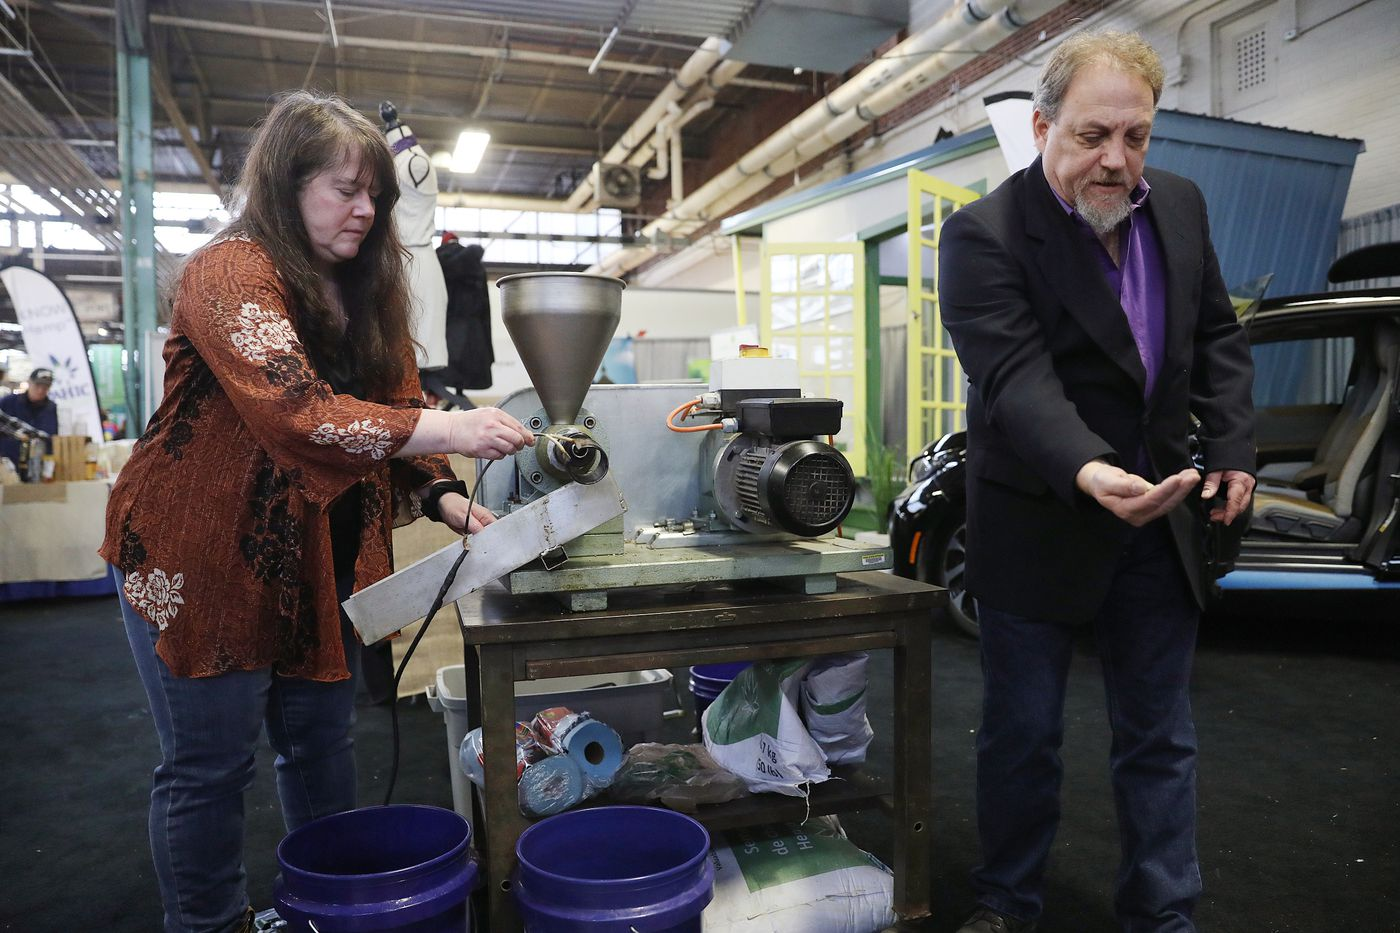 Erica Stark, left, executive director of the Pennsylvania Hemp Industry Council and the National Hemp Association, and hemp historian Les Stark demonstrate the hemp oil extraction process at the council's exhibit during the annual Pennsylvania Farm Show at the Pennsylvania Farm Show Complex & Expo Center in Harrisburg, Pa., on Tuesday, Jan. 7, 2020. The Hemp House stands behind them.